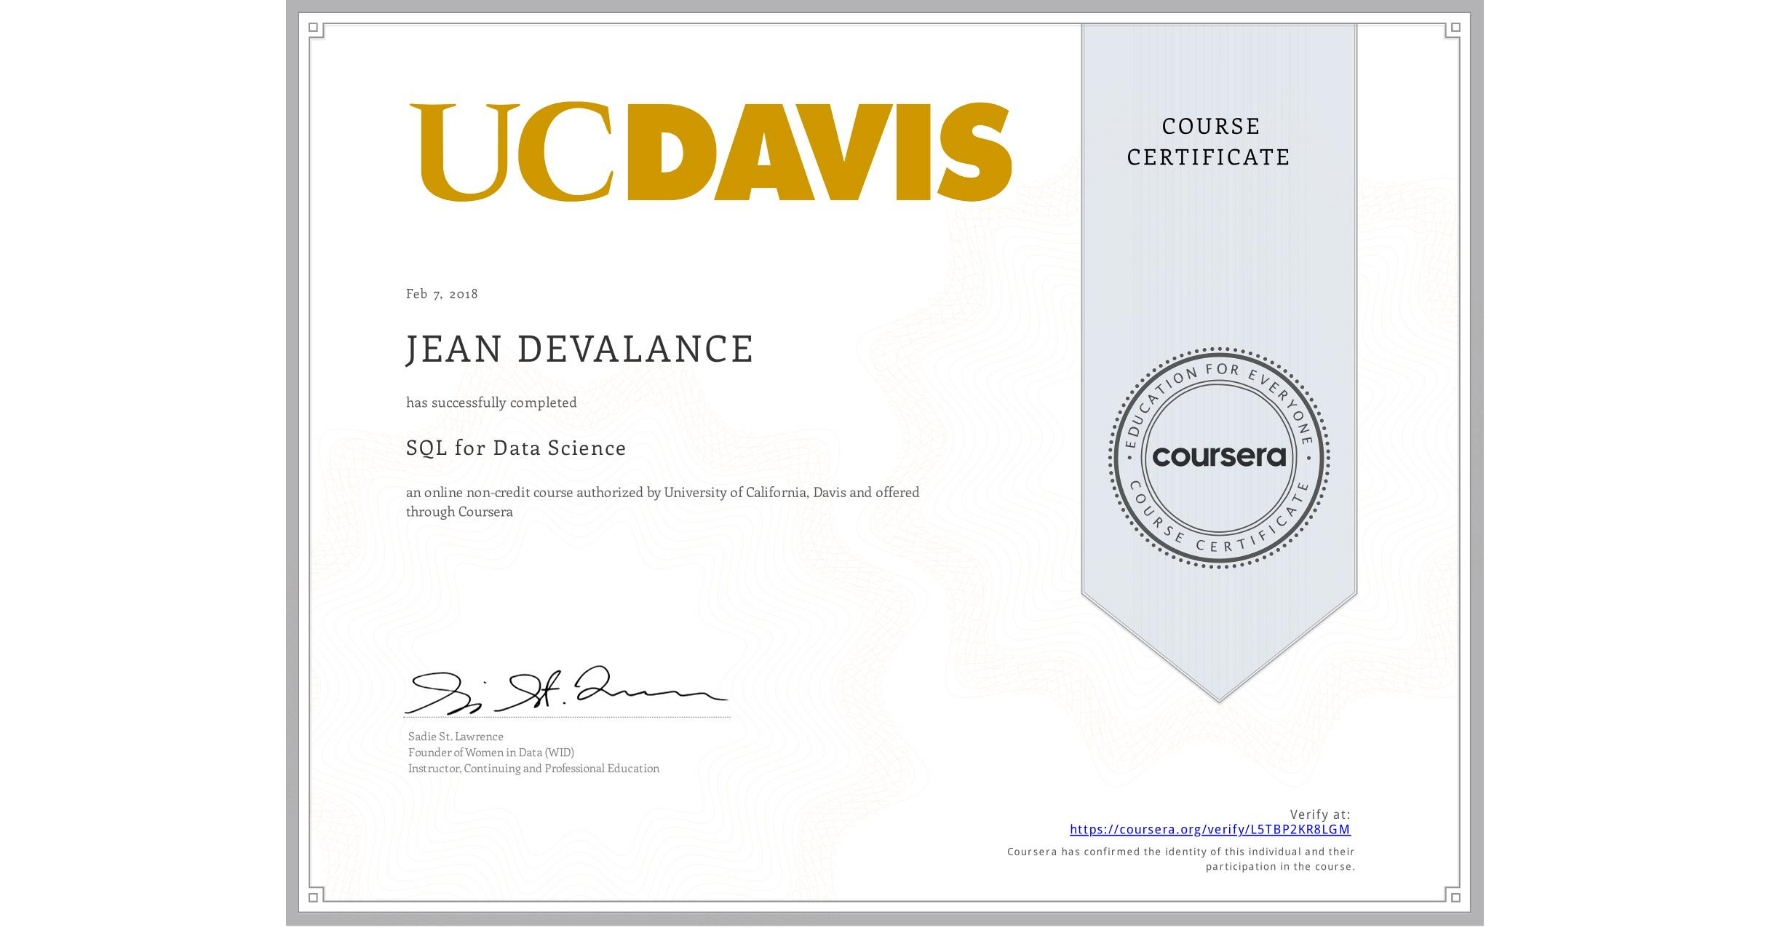 View certificate for JEAN DEVALANCE, SQL for Data Science, an online non-credit course authorized by University of California, Davis and offered through Coursera